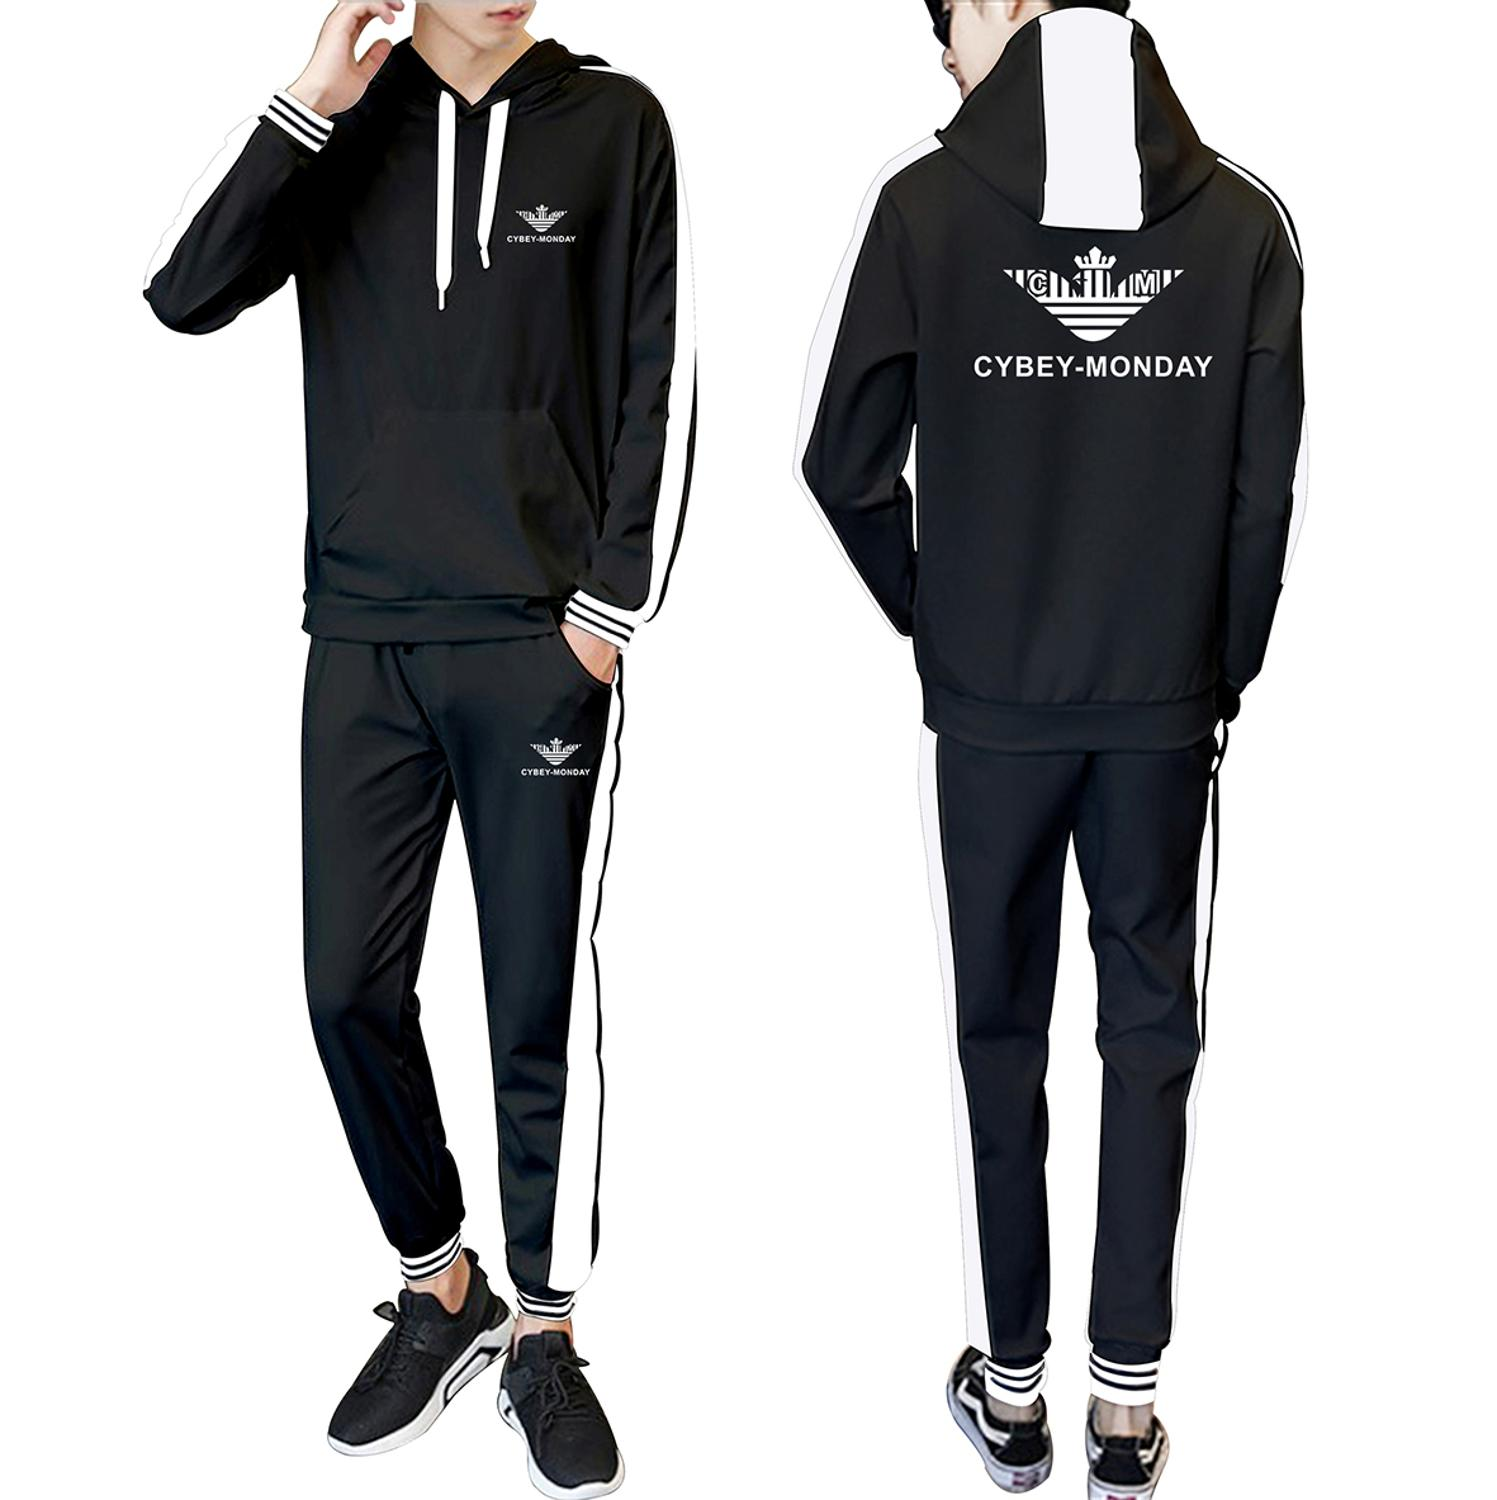 Sports New Logo 2020 Spring and Autumn New Hooded Stitching Fashion Casual Suit Fashion Men's and Women's Sports Casual Suit 1